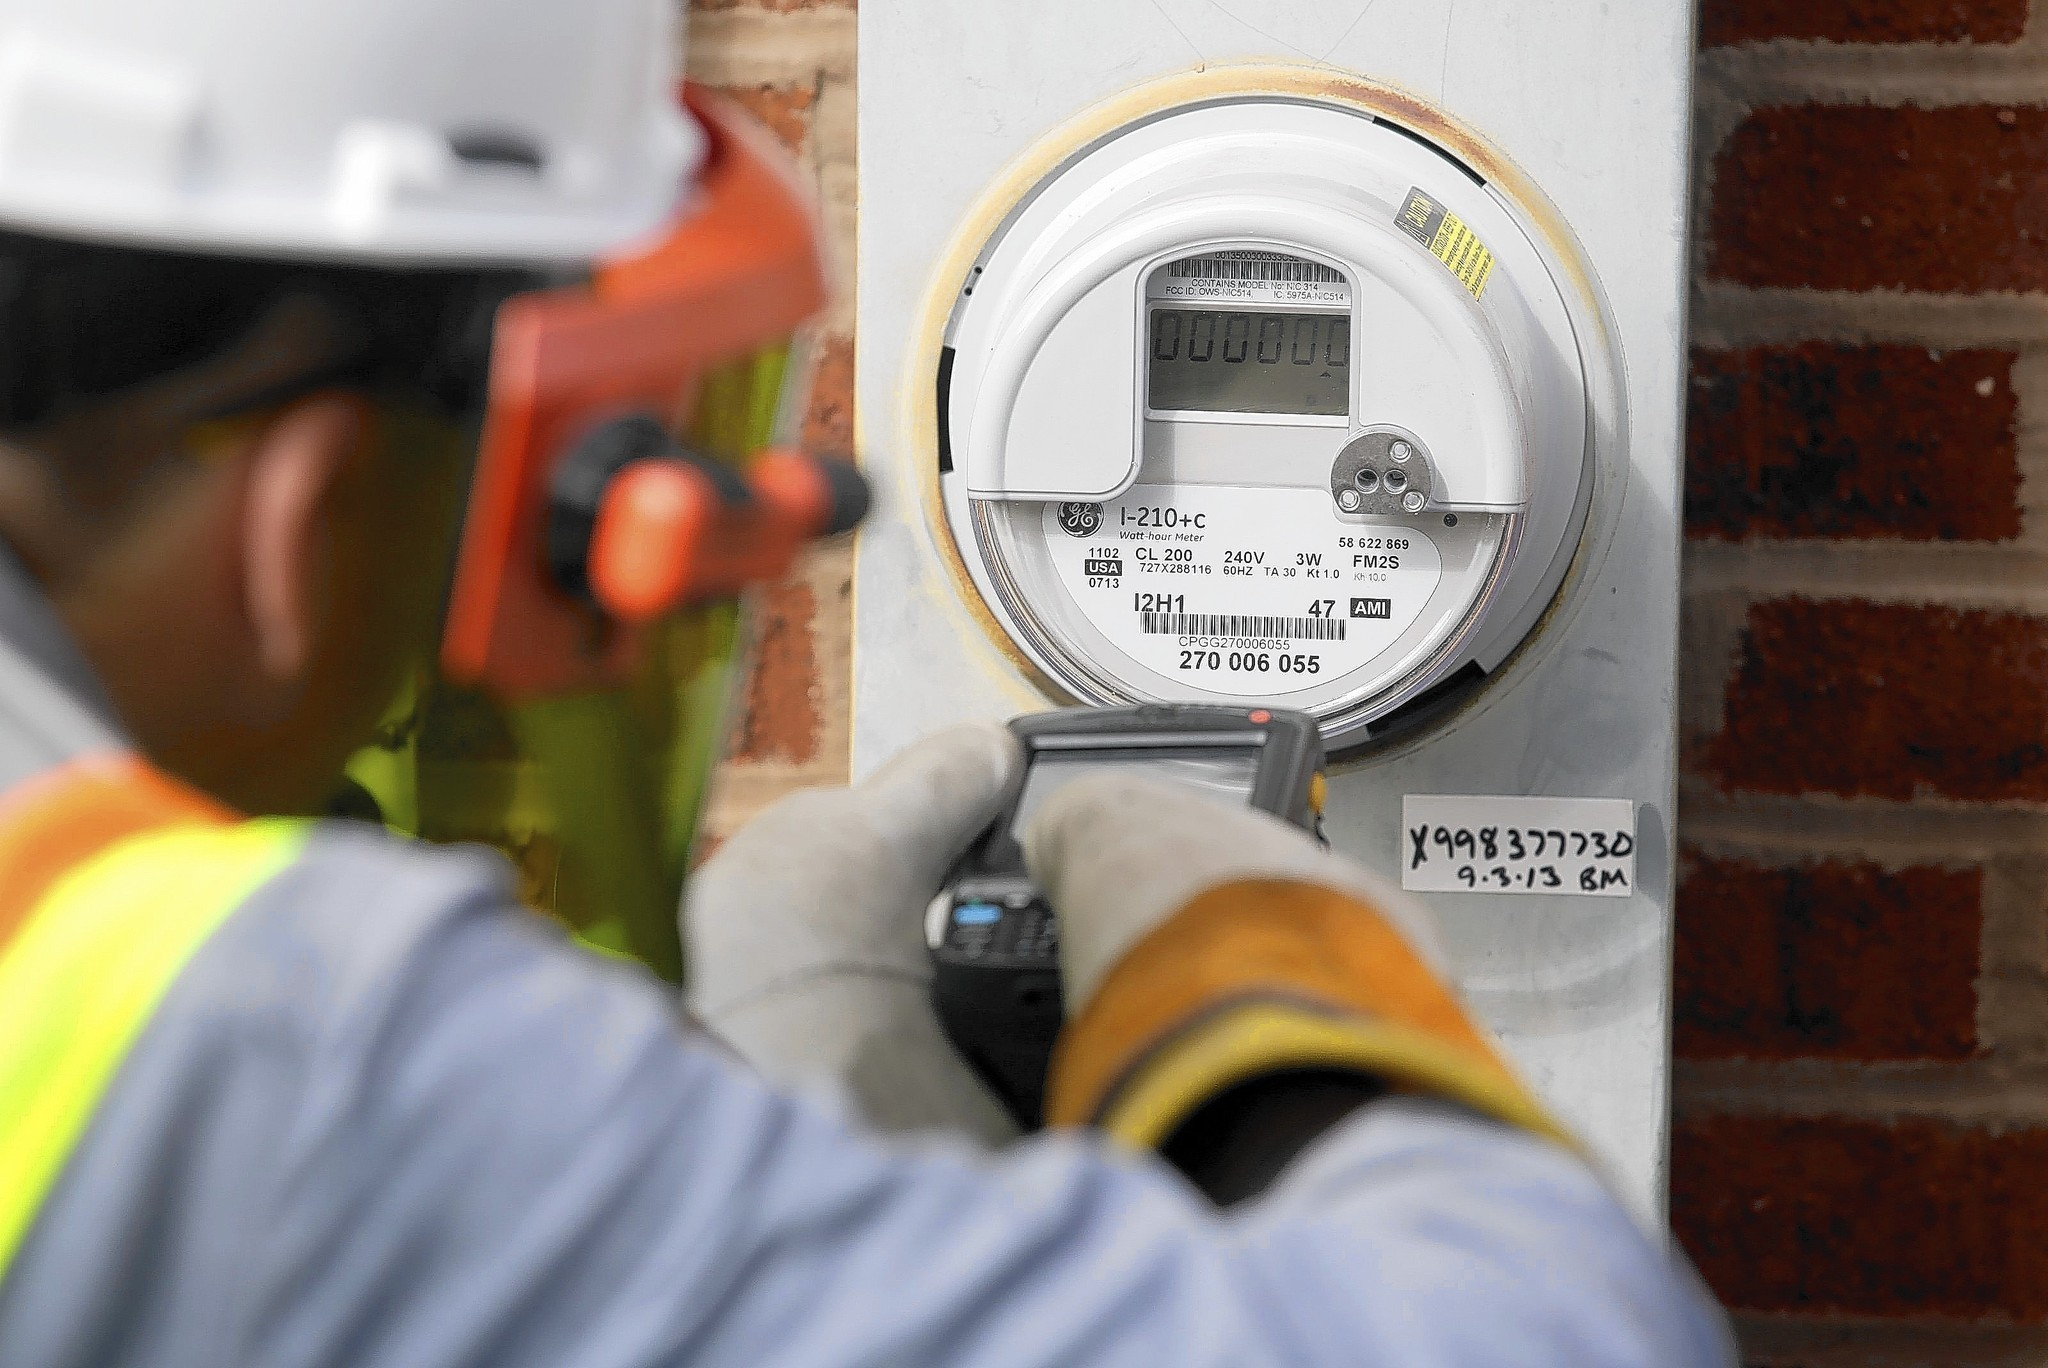 Increasing Electricity Meter : Comed closely guarding smart meter data chicago tribune